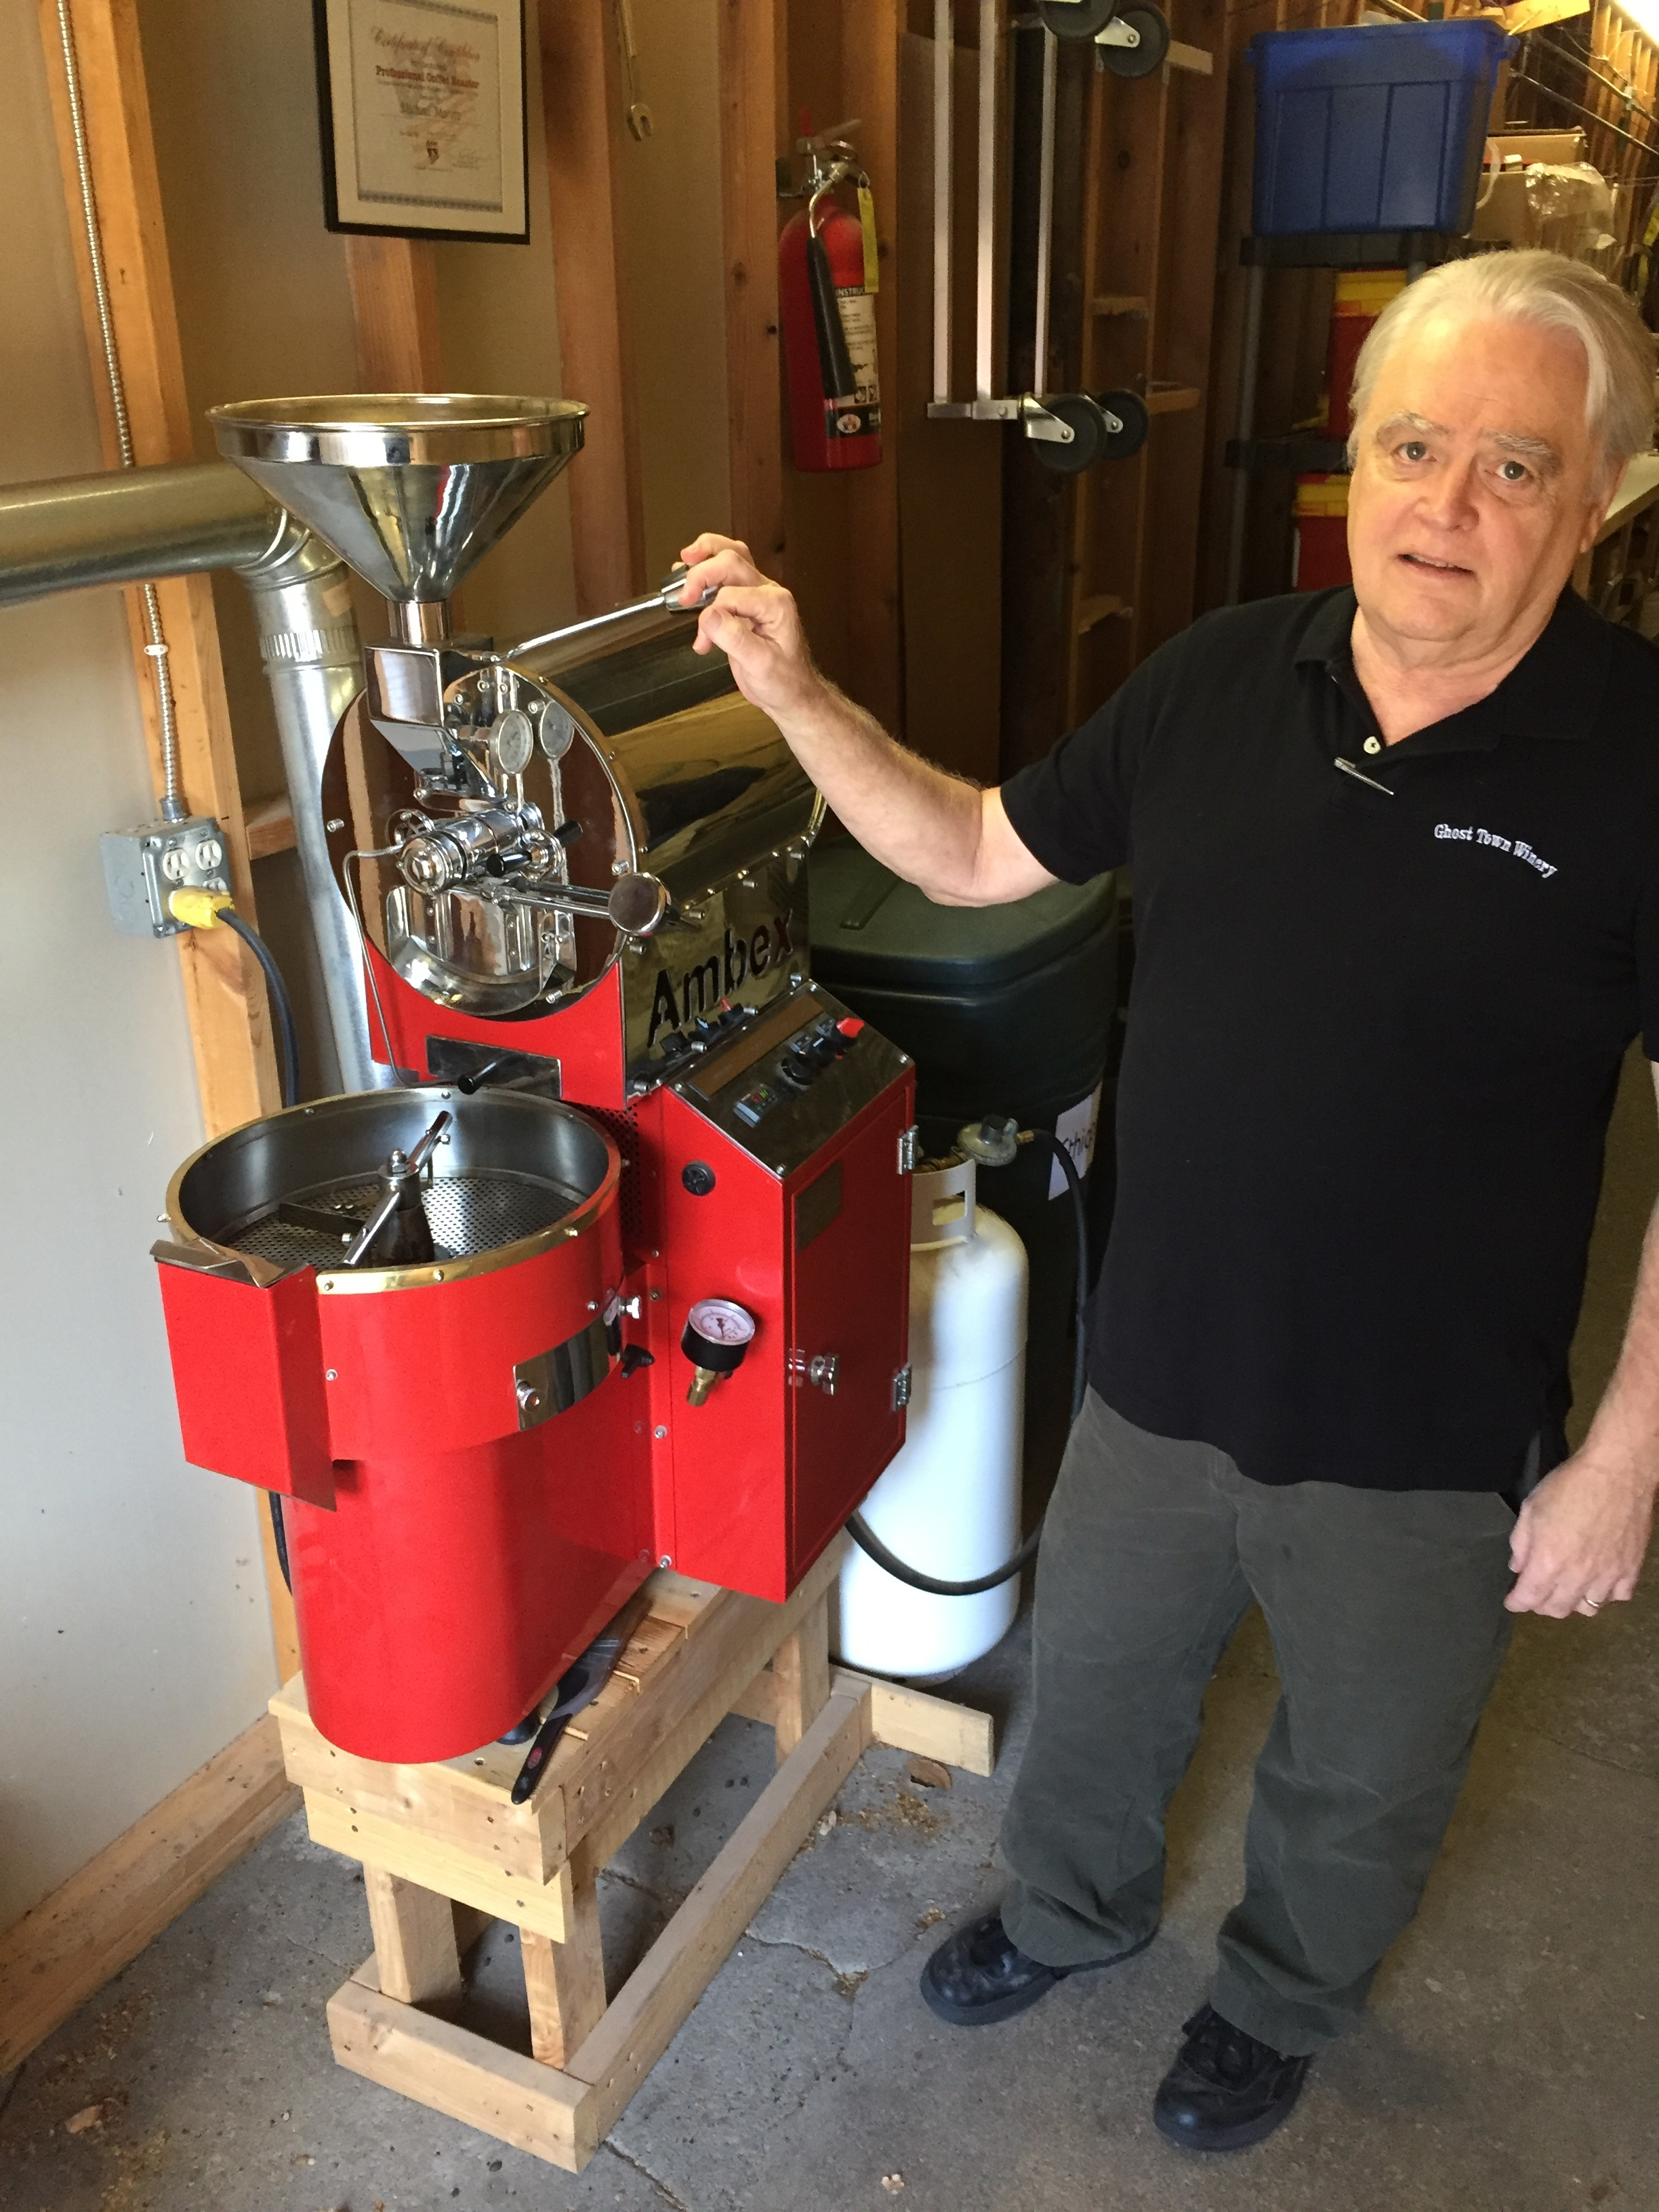 Our Master Roaster, Mike with his coffee roaster